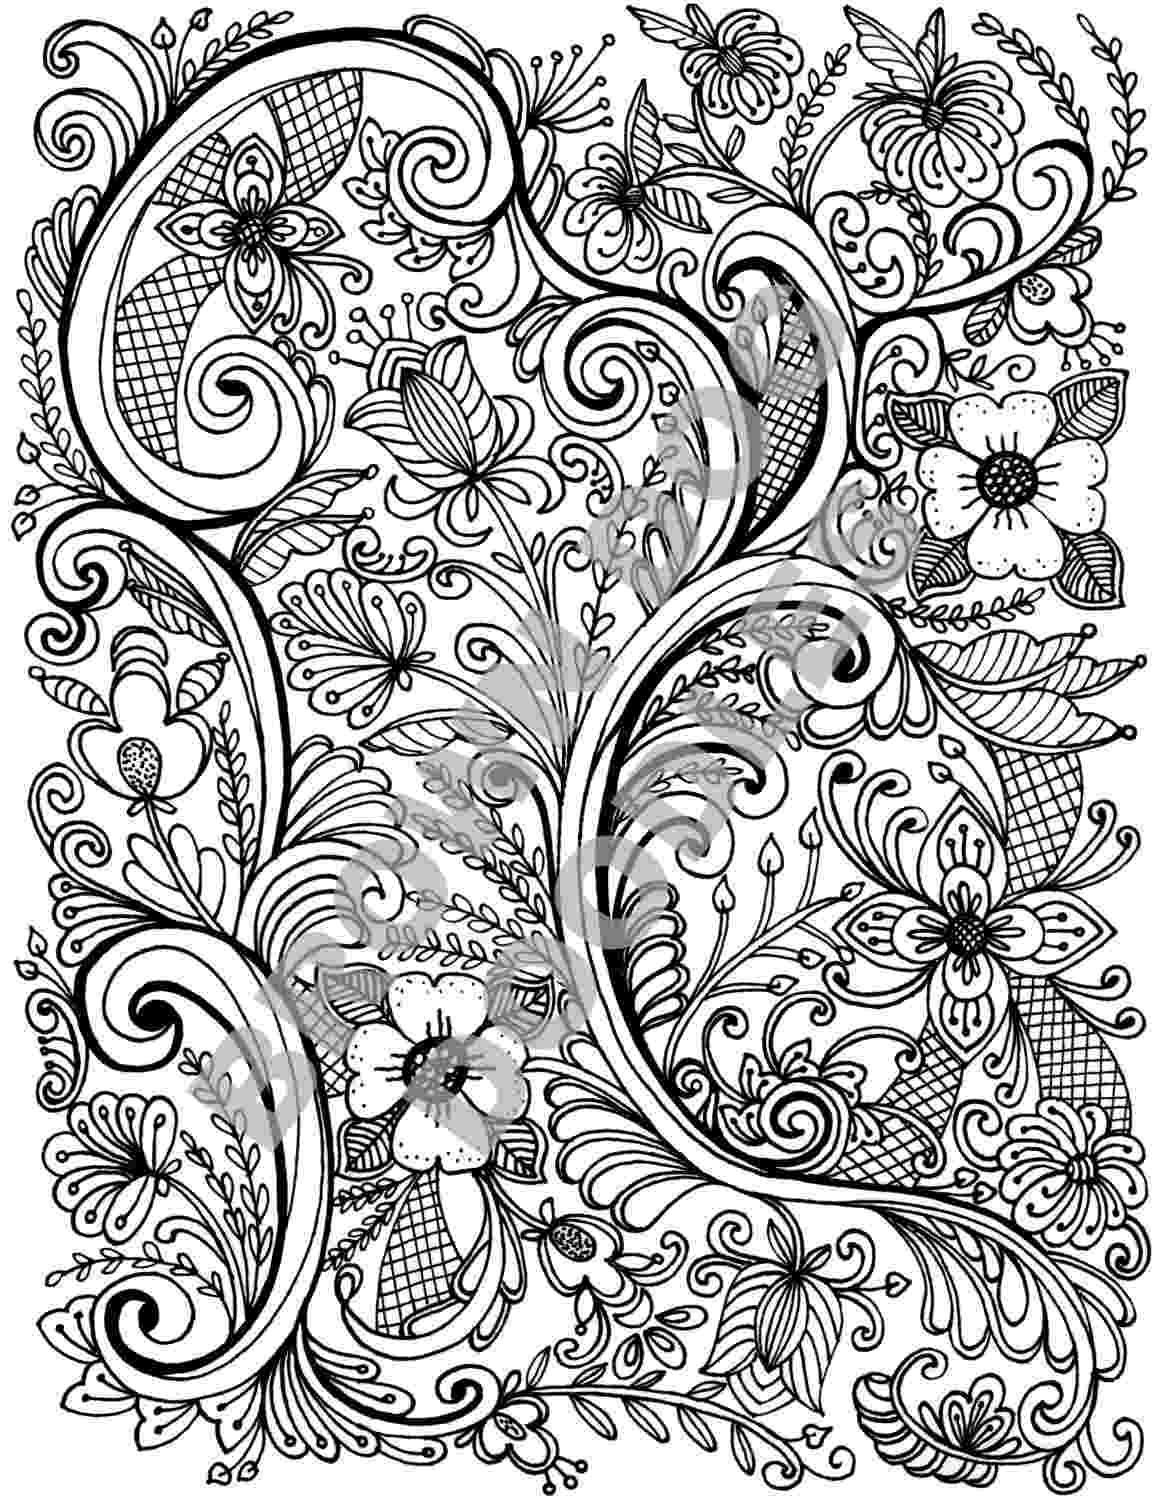 rosemaling coloring pages rosmaling coloring pages fake norwegian heritage rosemaling coloring pages